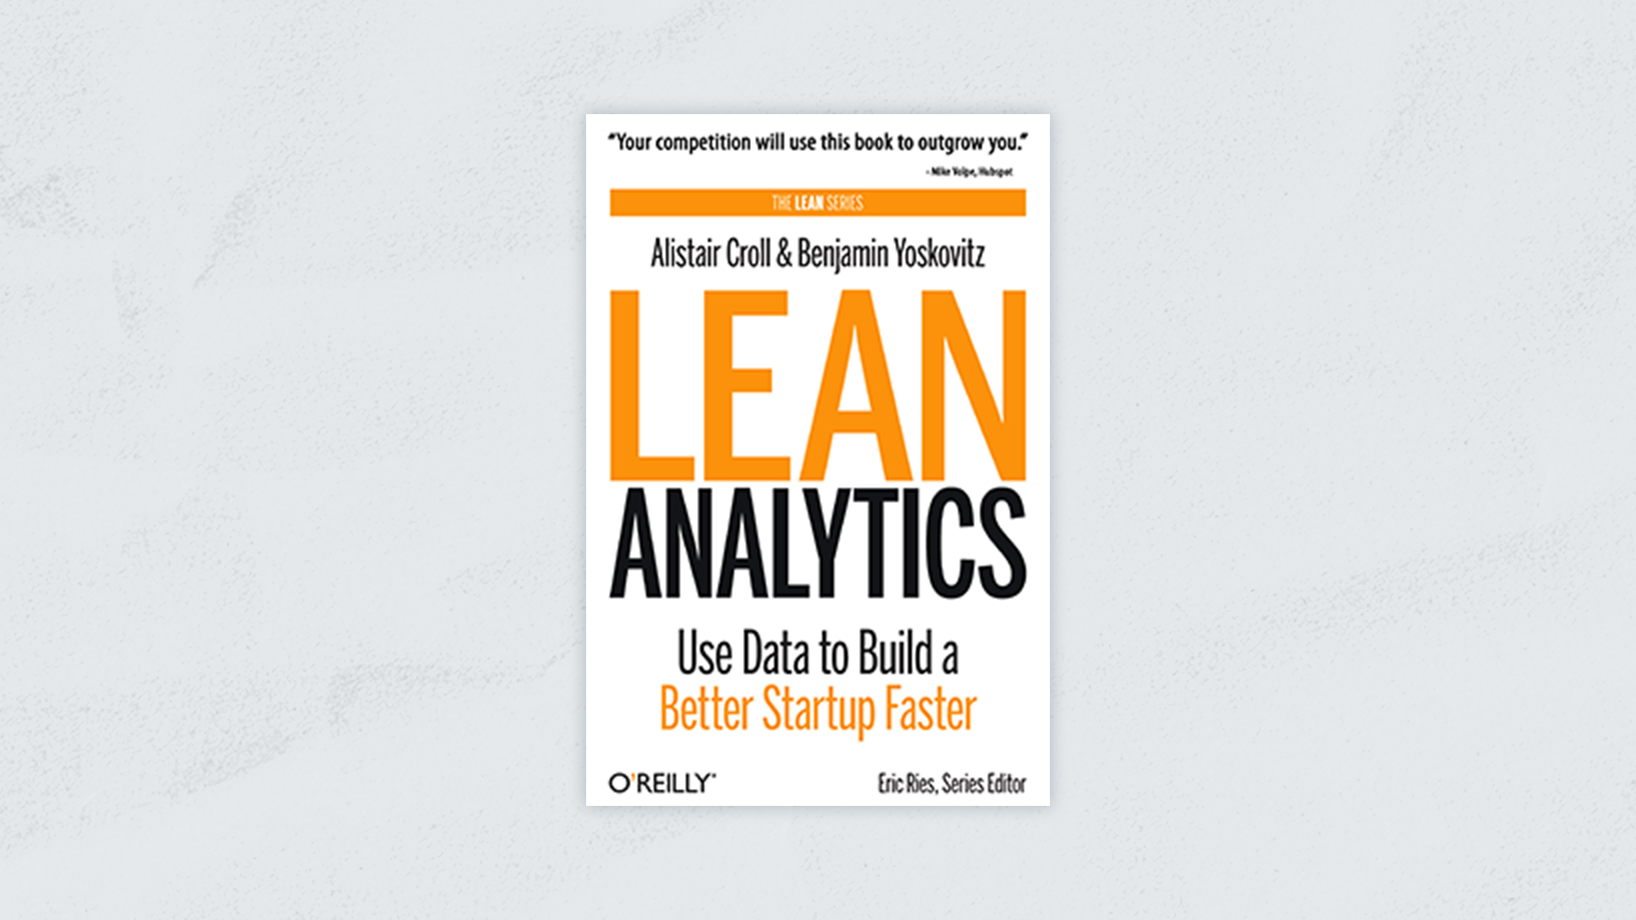 best-product-management-books Lean-Analytics-Use-Data-to-Build-a-Better-Startup-Faster inline@2x